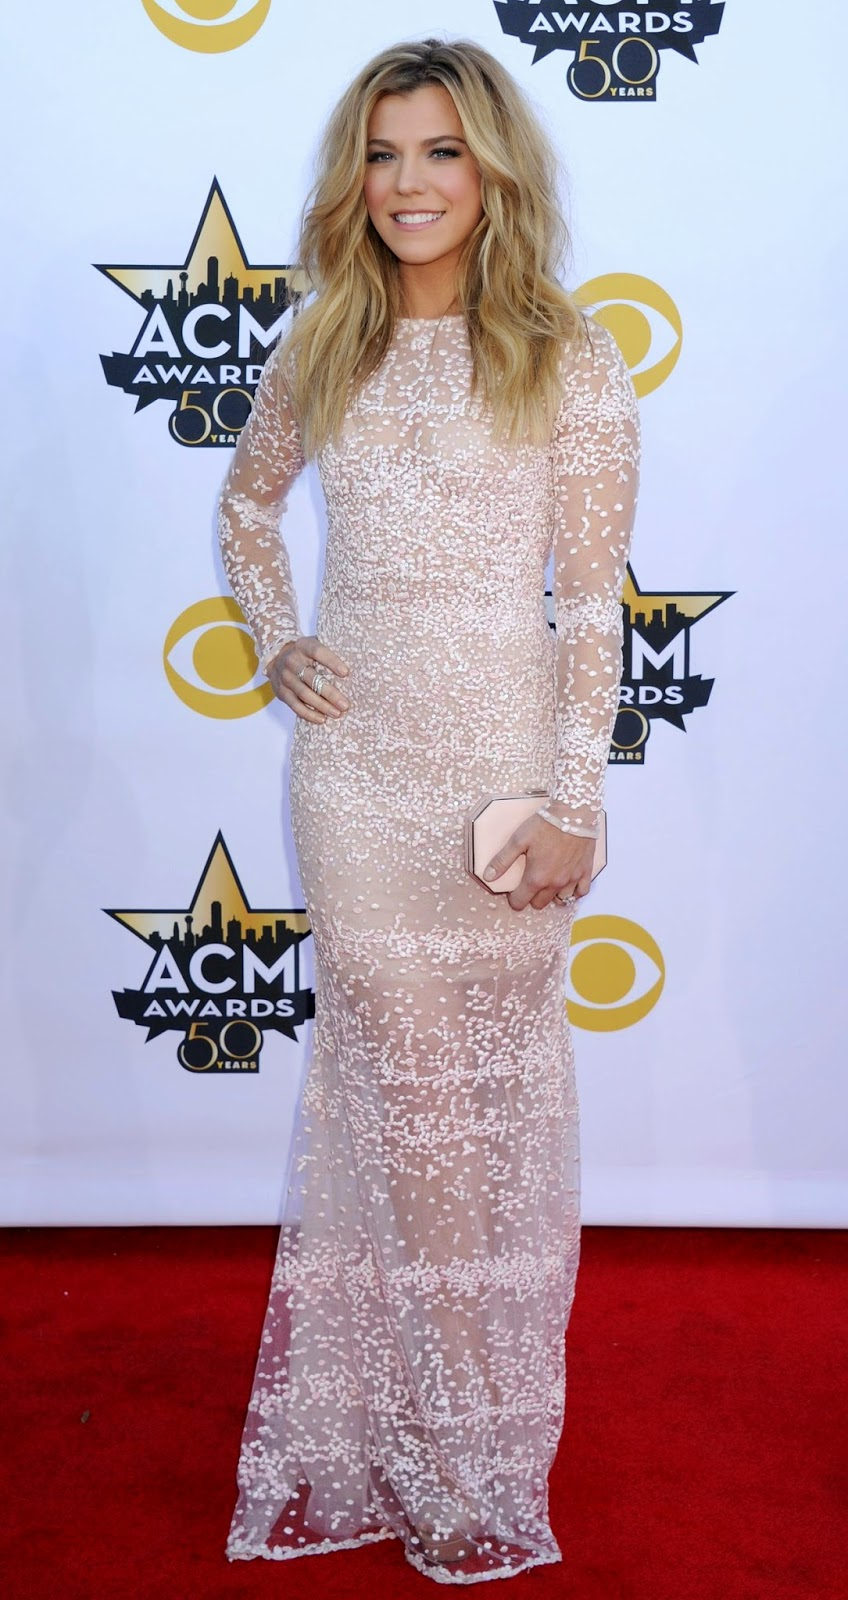 Kimberly Perry in a sheer beaded dress at the 2015 ACM Awards